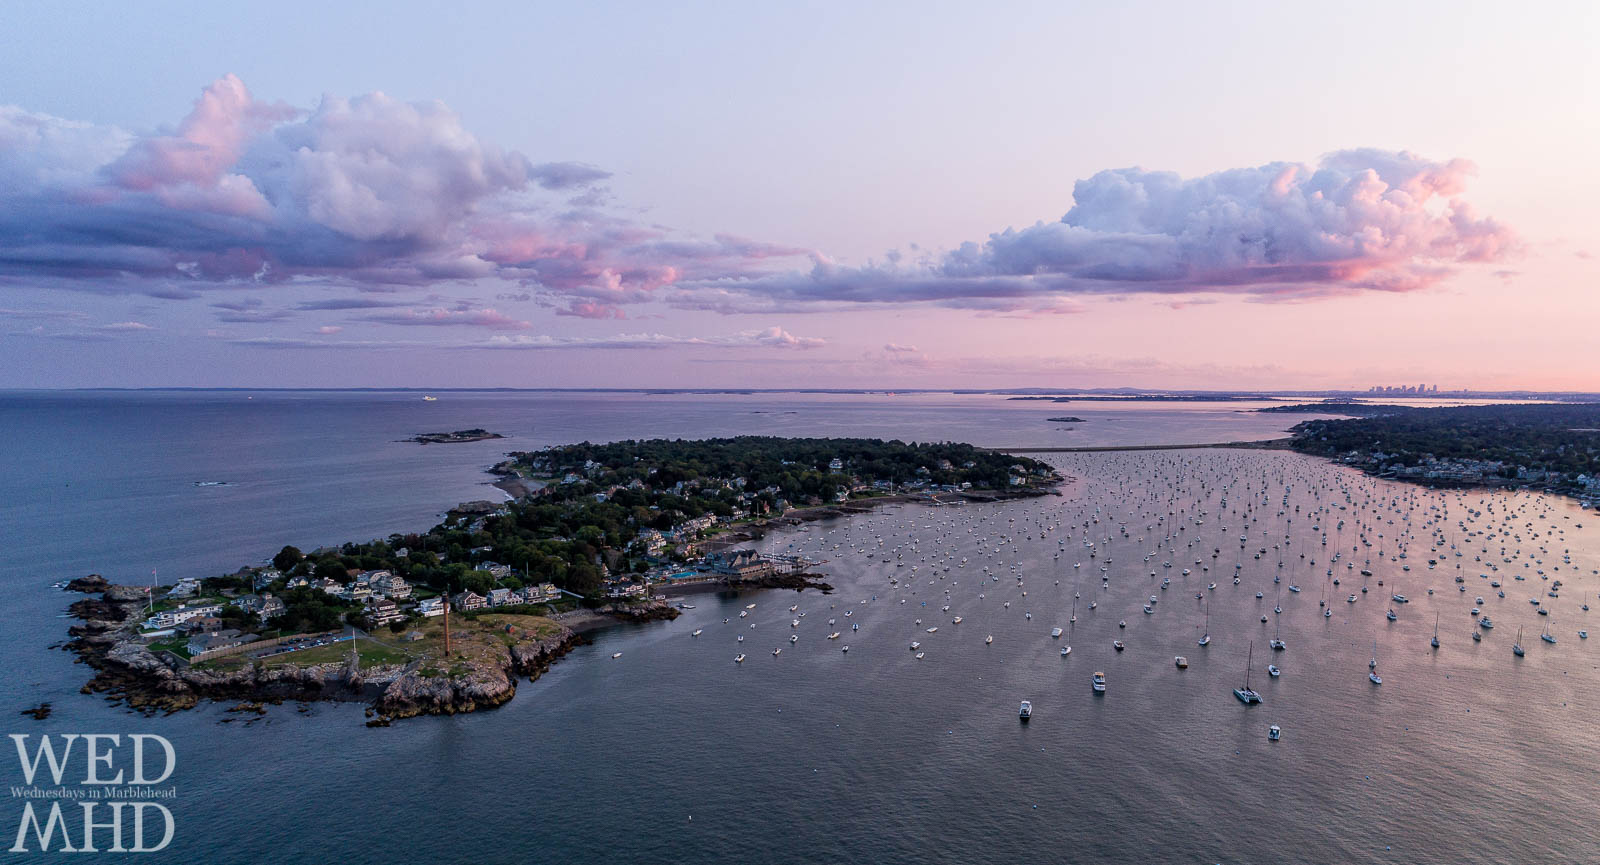 A purple sunset sky over Marblehead harbor bathes the Neck, causeway and boats in a soft light with the Boston skyline visible in the distance